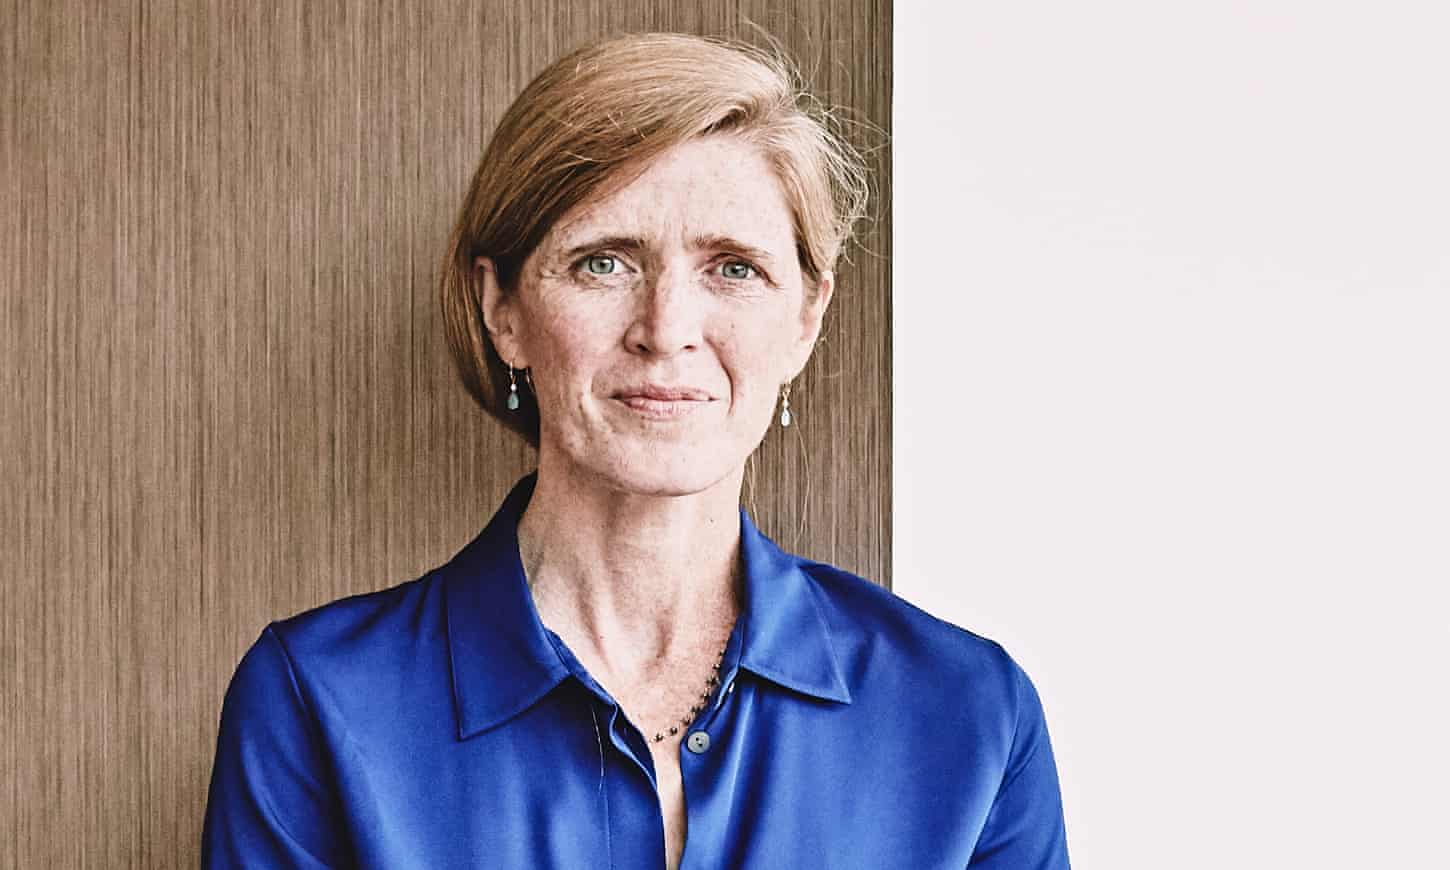 Samantha Power: 'To fall flat in such a public way and to have no job ... I was a wandering person'